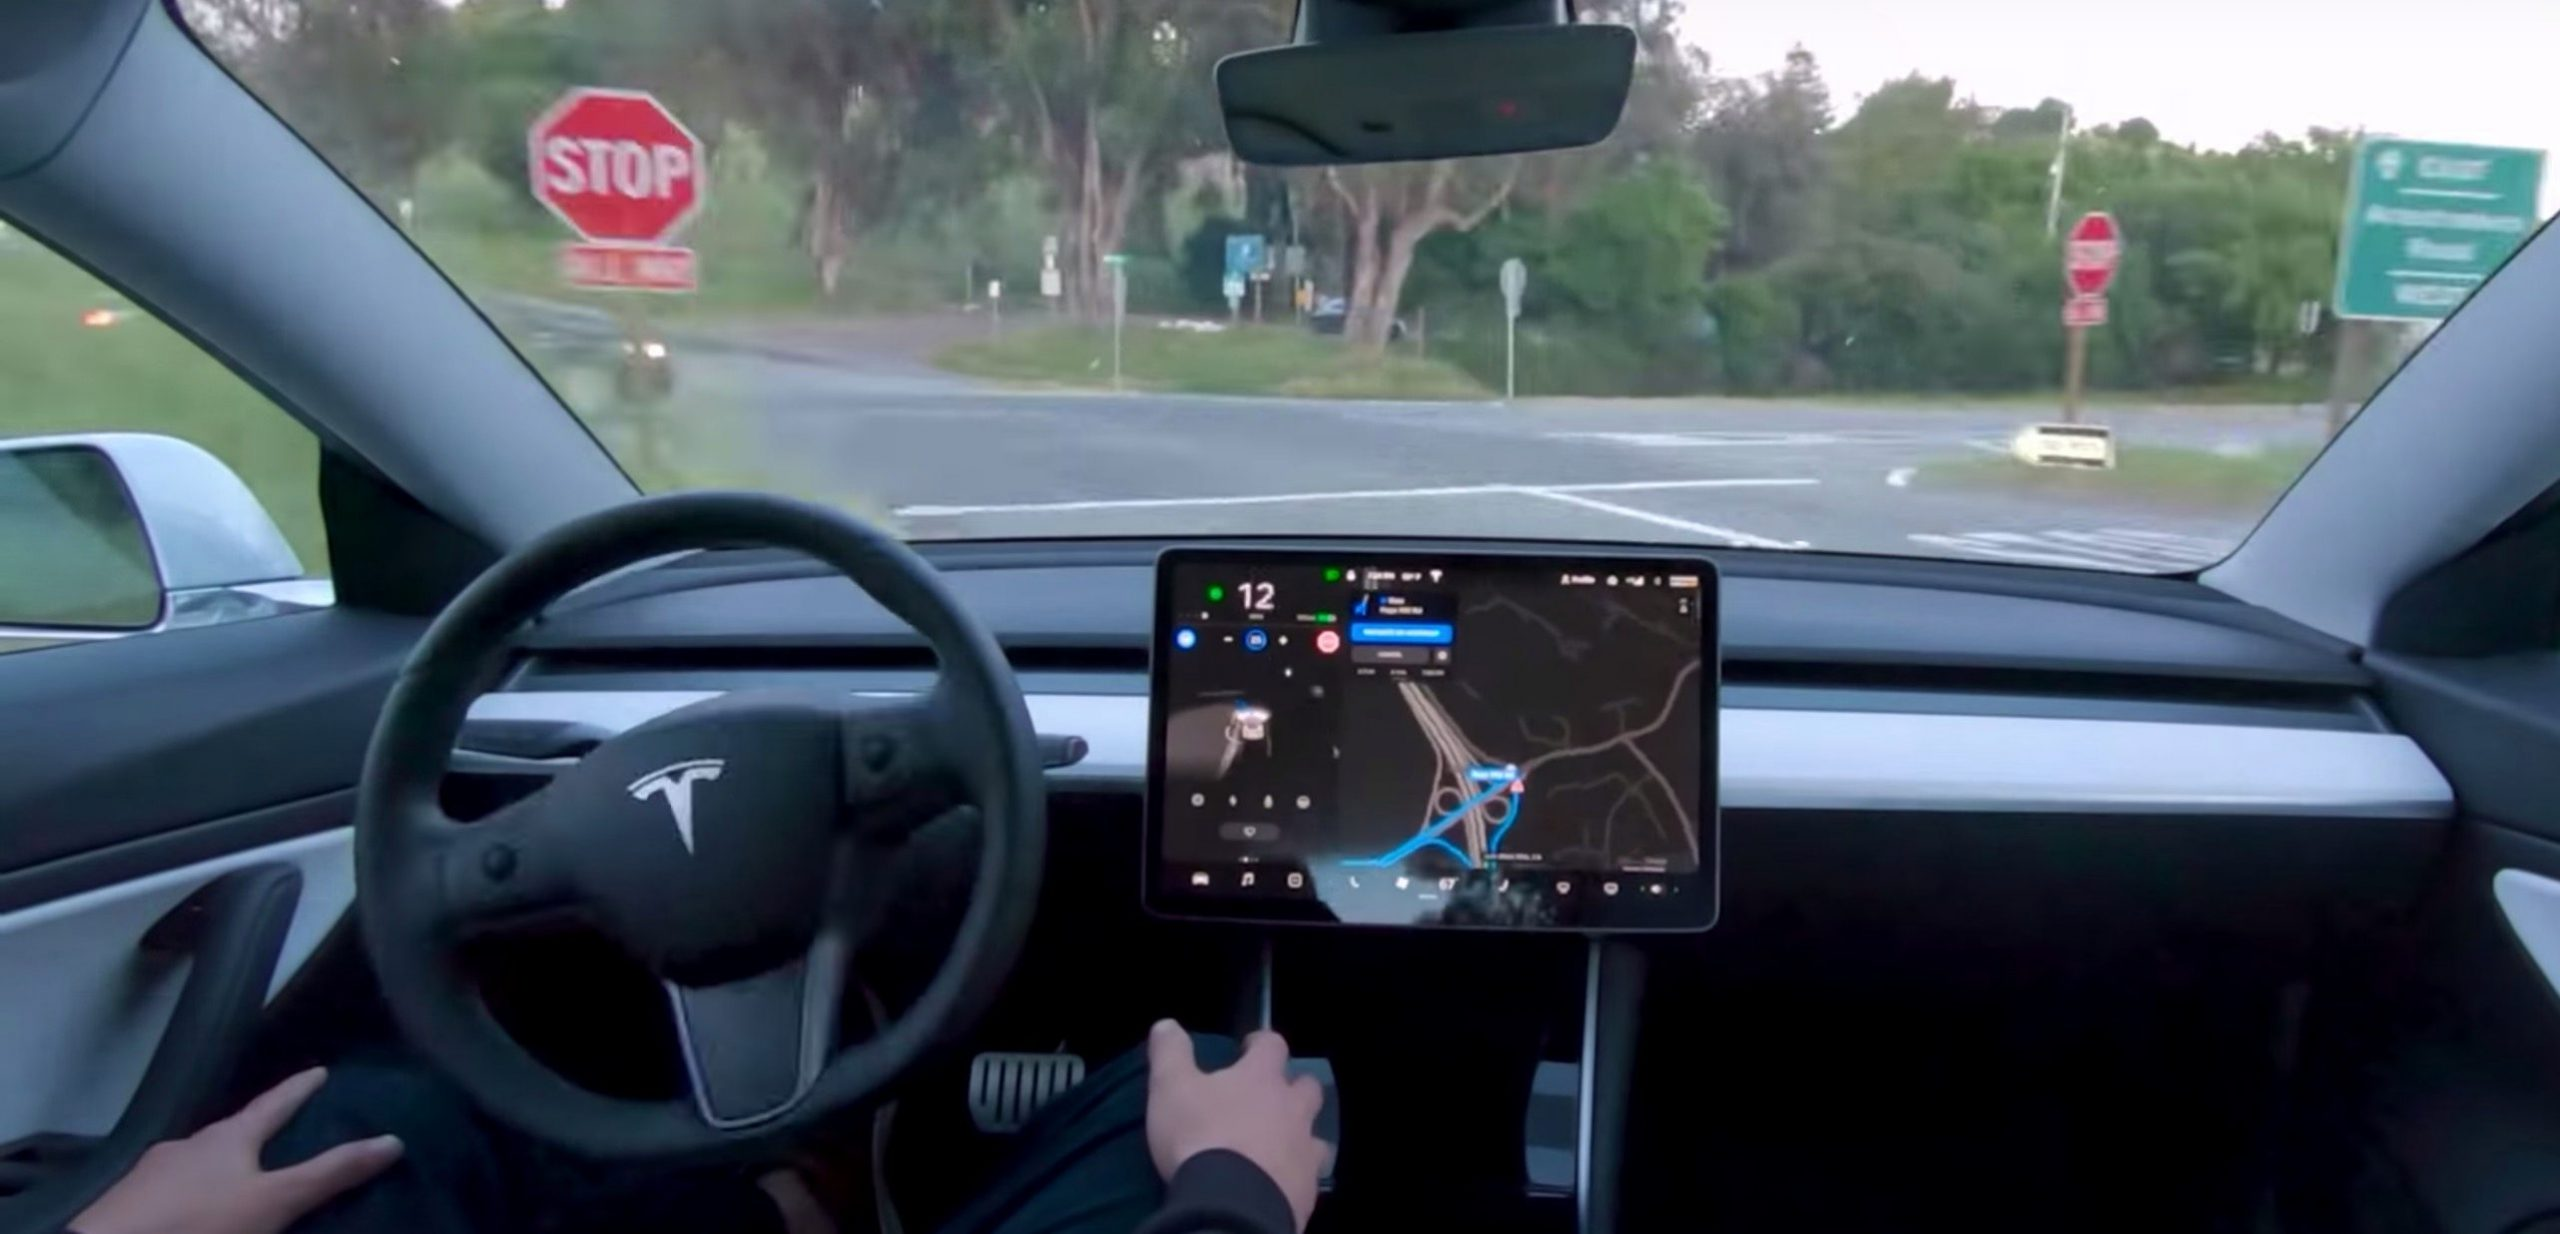 Elon Musk on Tesla Self-Driving: 'I can almost go from my house to work with no intervention'